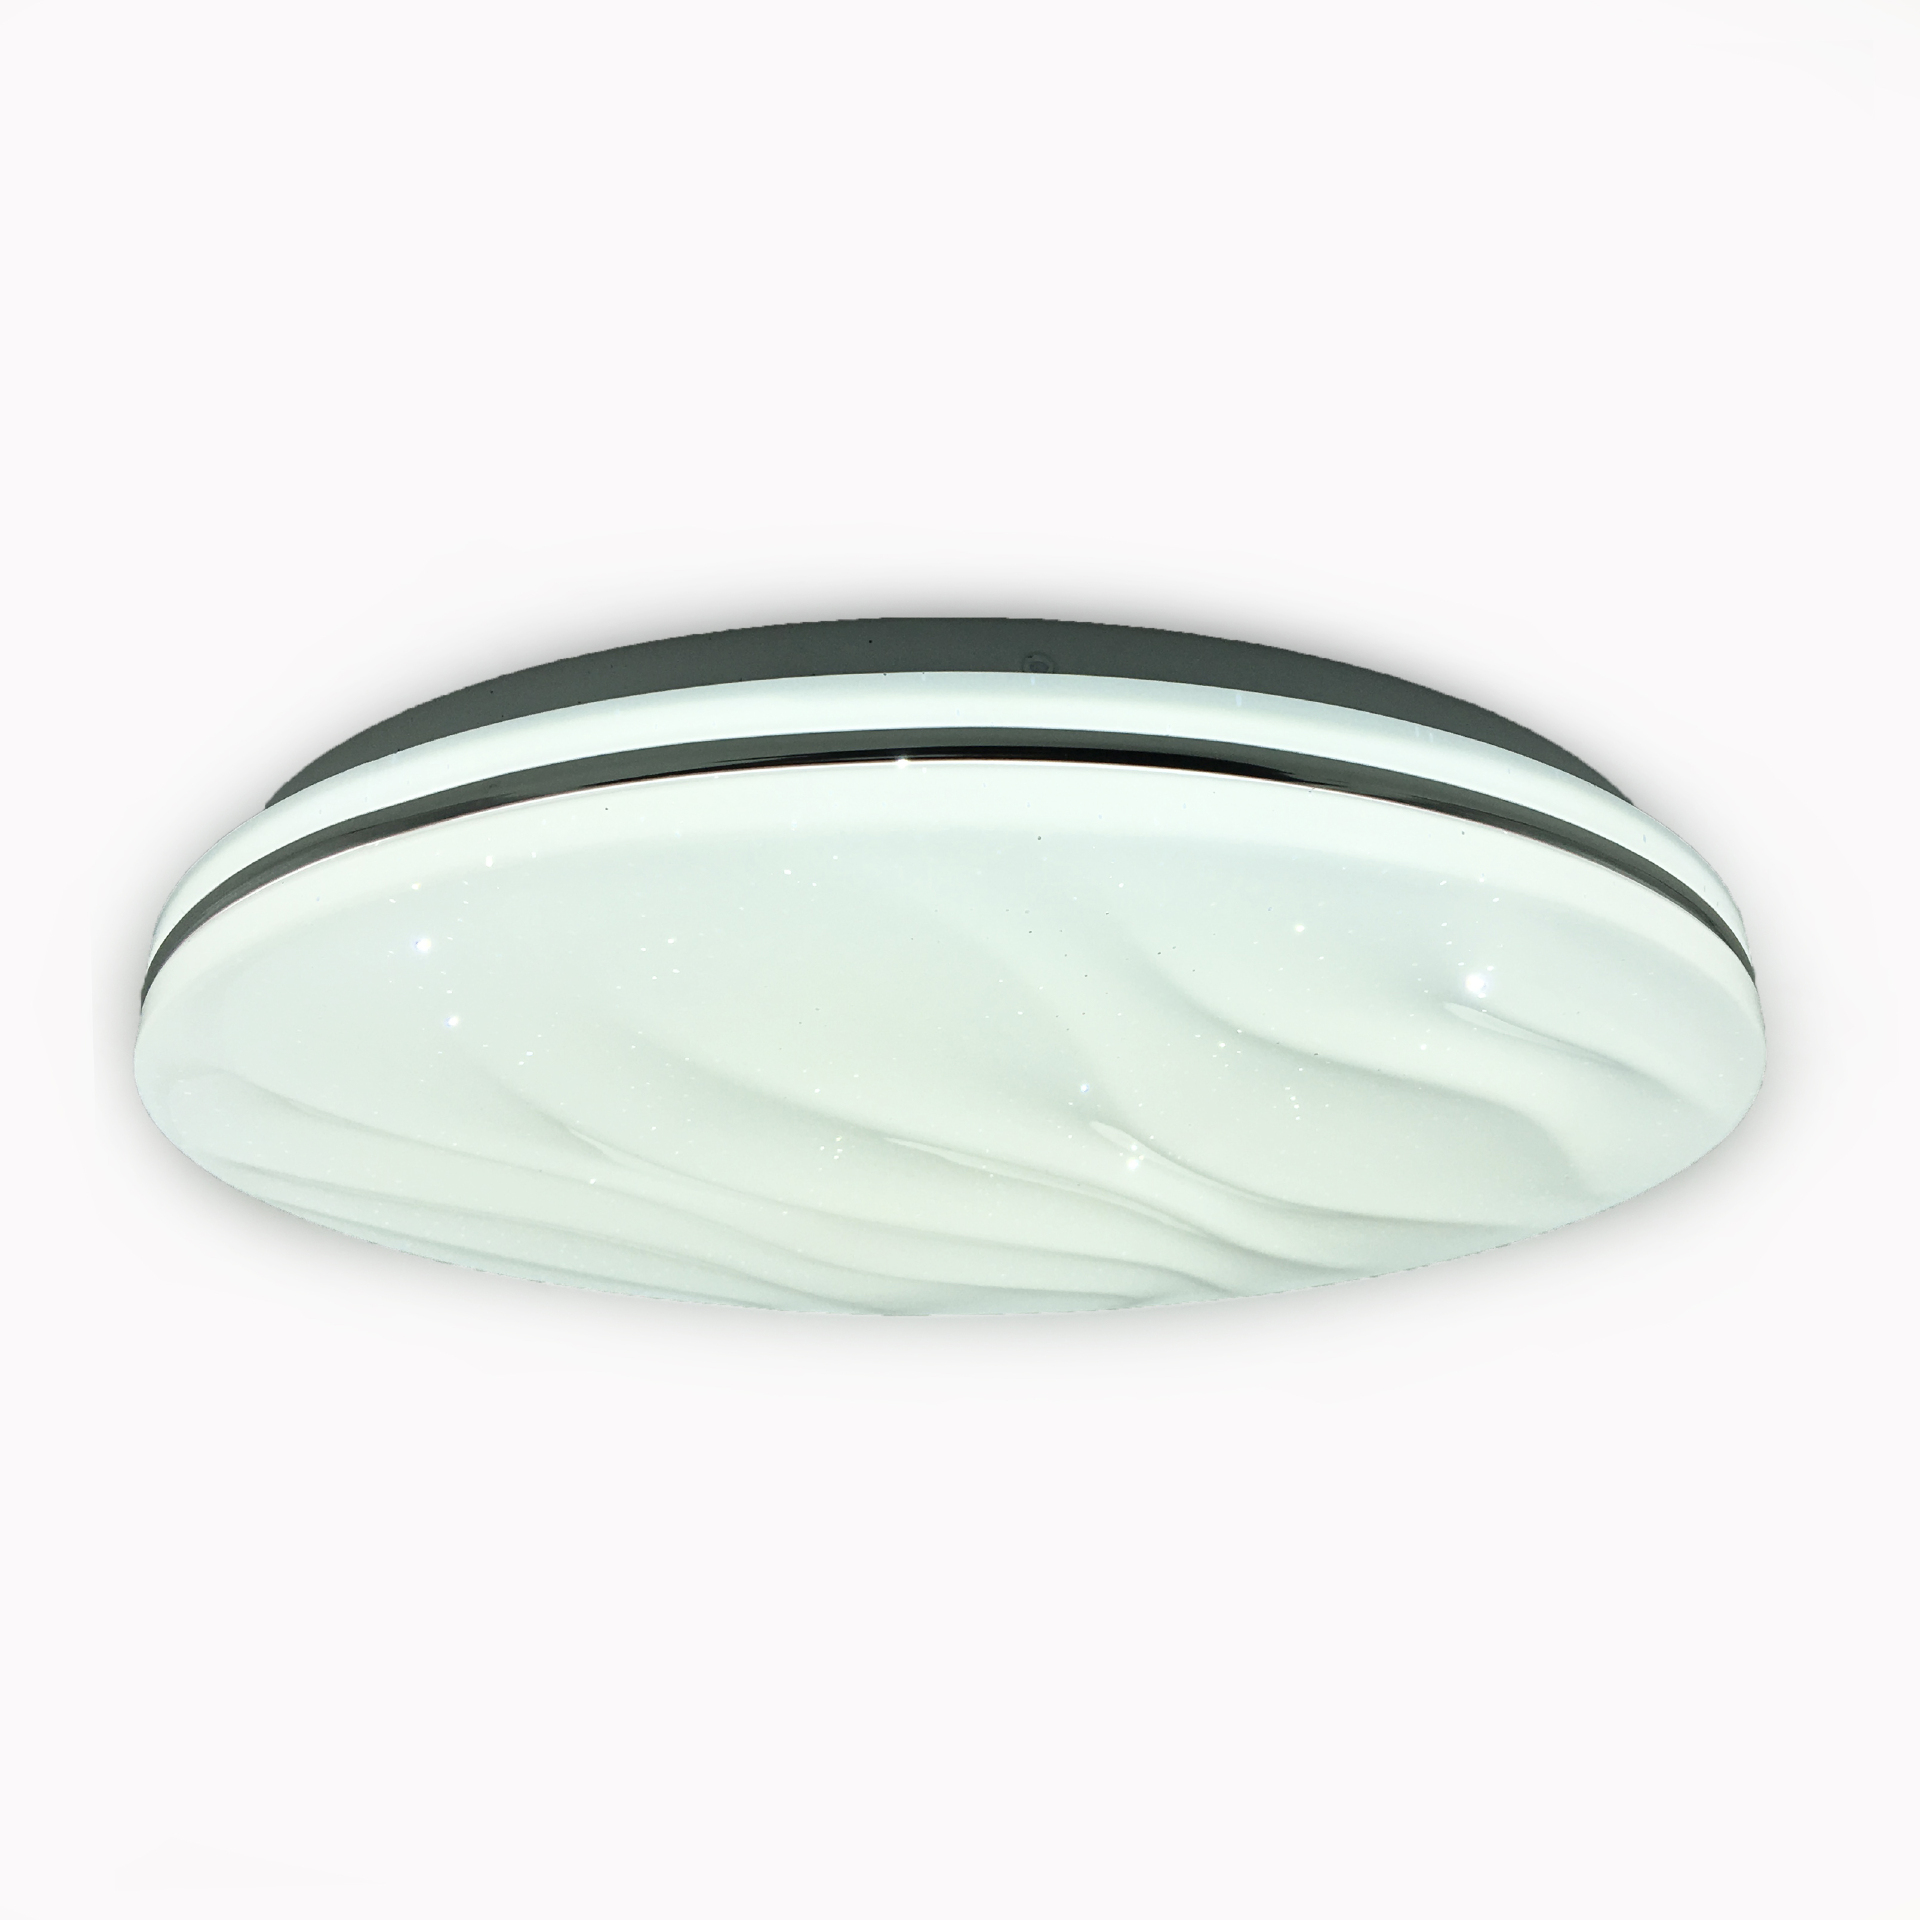 Plafón LED home depot blanco frío regulable con control remo